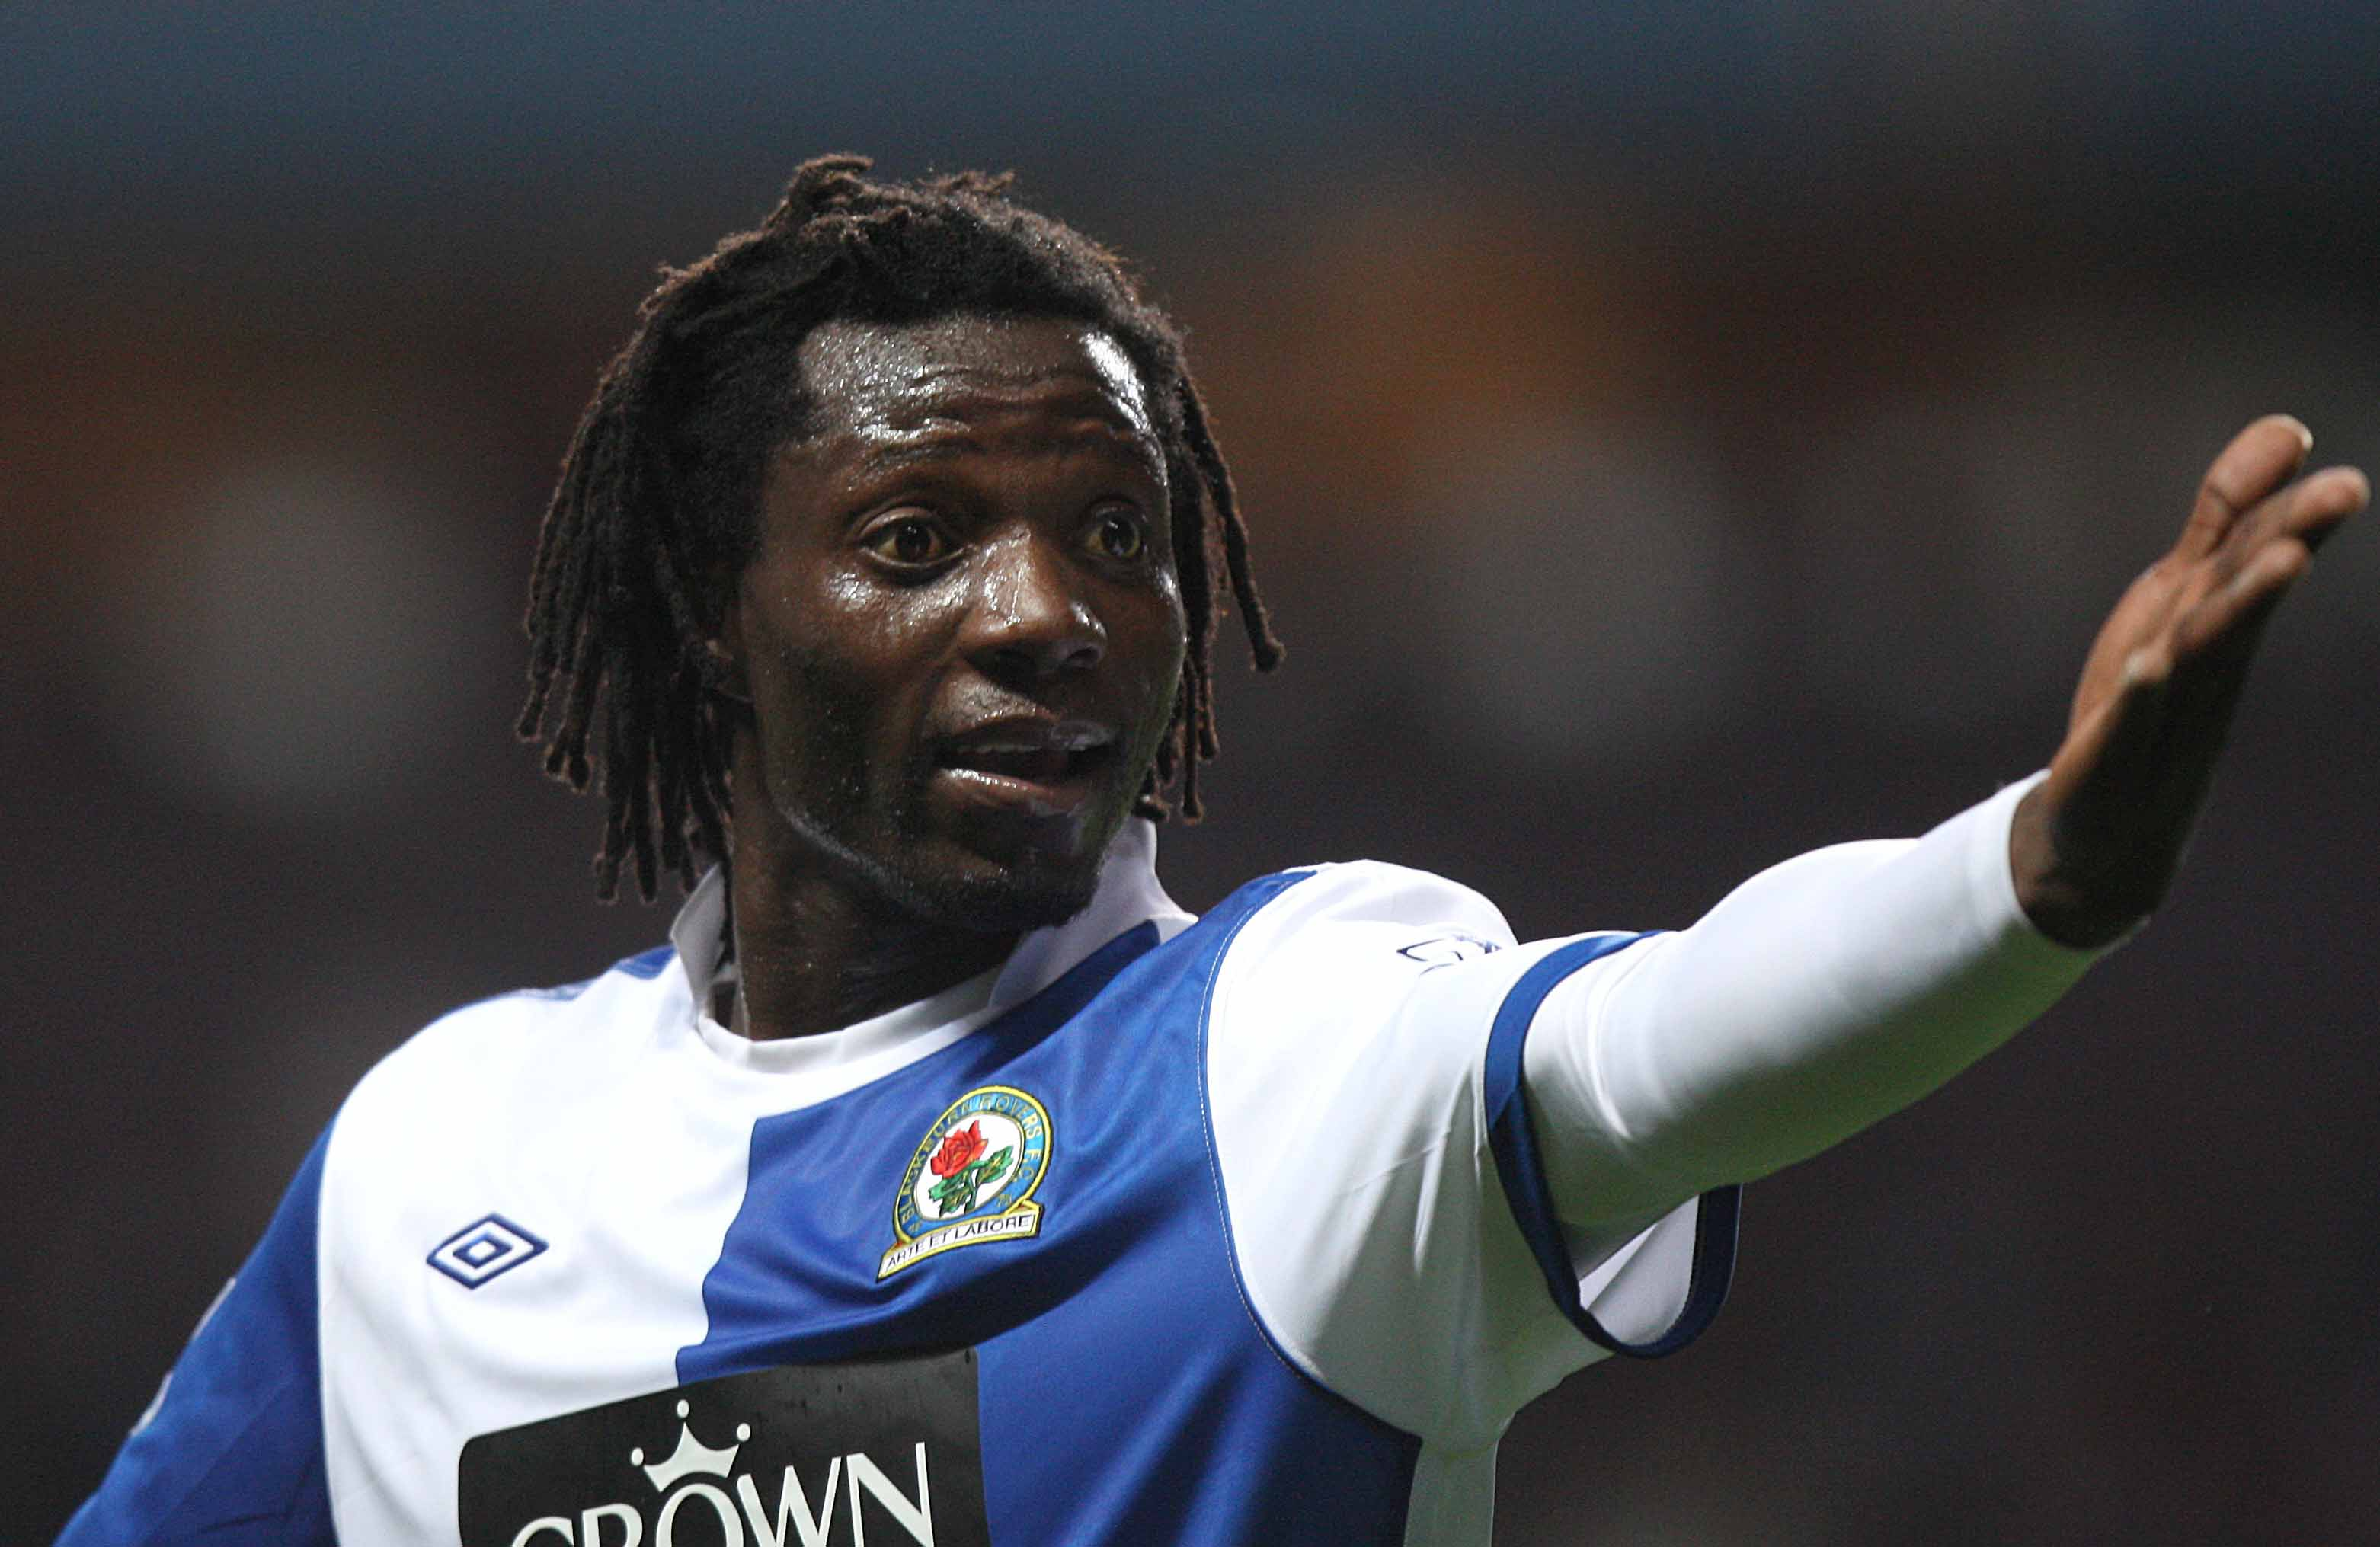 VIDEO: Harry Redknapp tells story about forcing Benjani to move to Man City